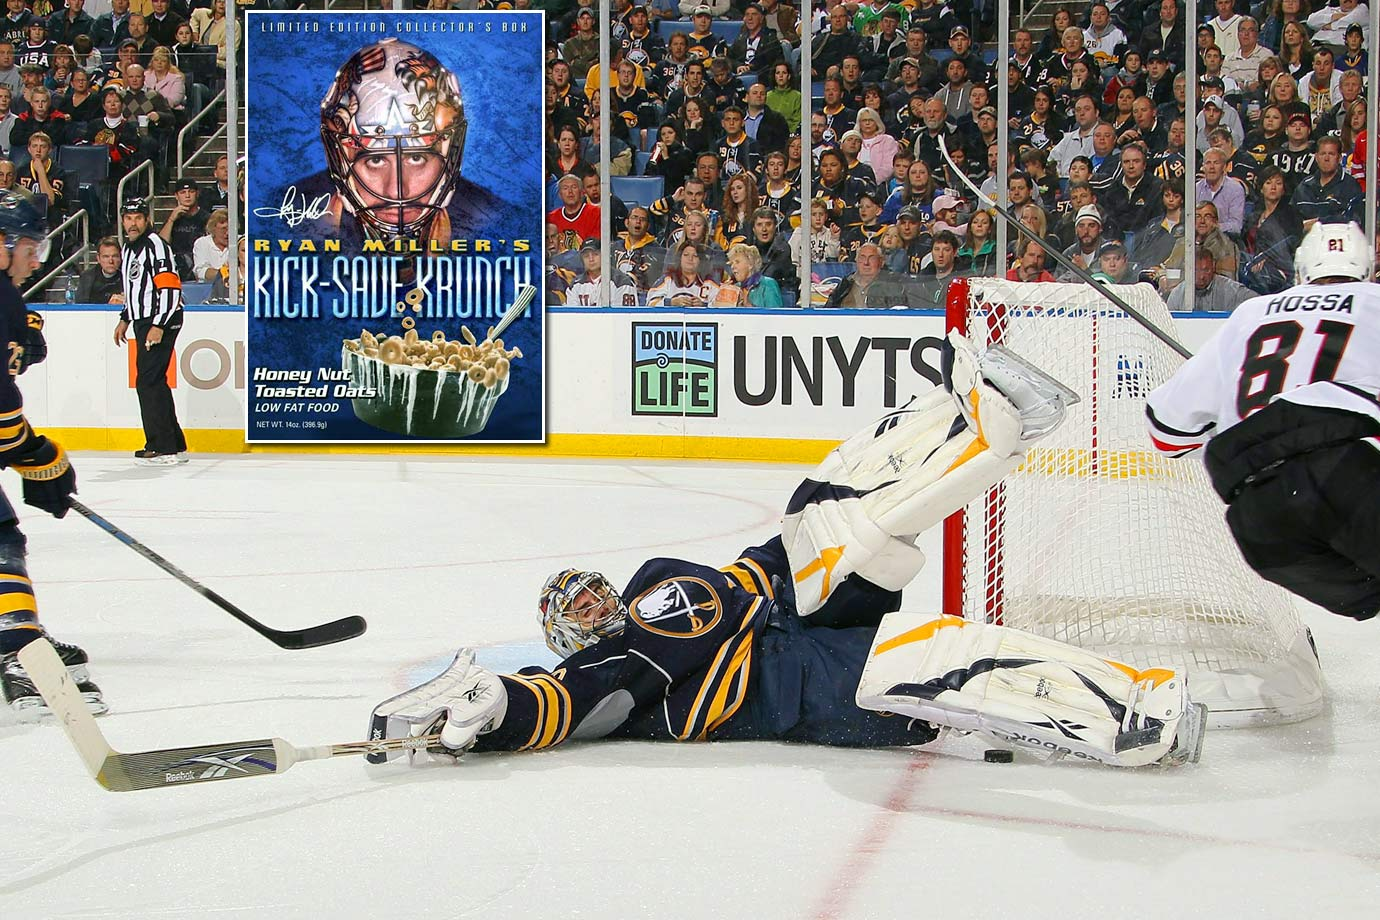 In 2010 the Sabres' star netminder began appearing on breakfast tables in the greater Buffalo area. Proceeds from sales benefitted his Steadfast Foundation.